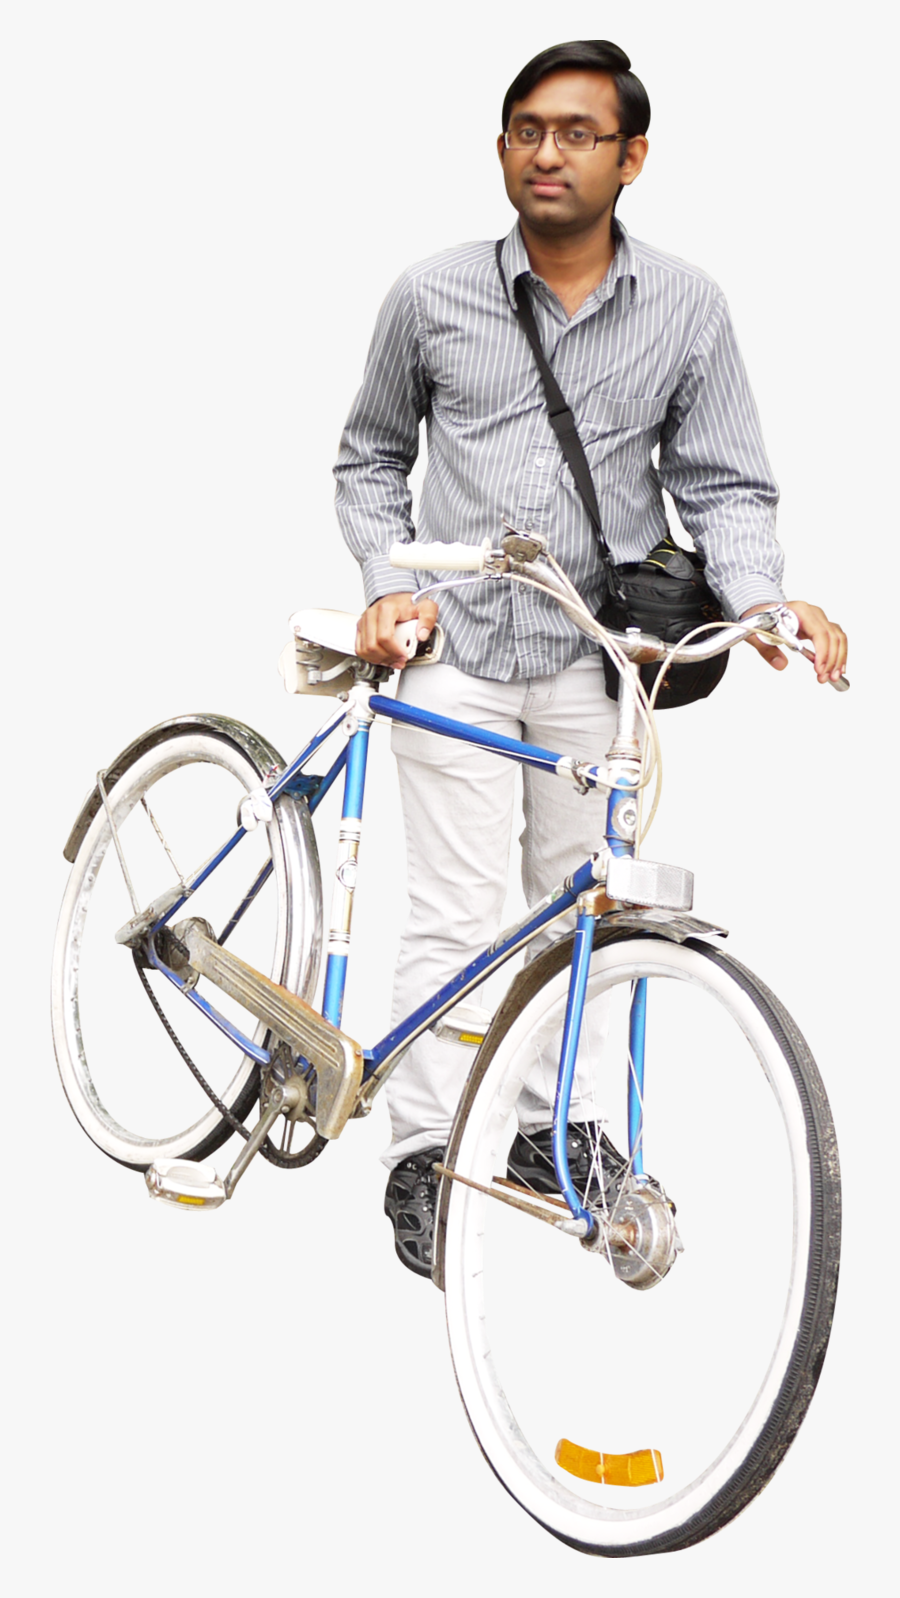 Riding Bicycle Four - Person With Bike Png, Transparent Clipart